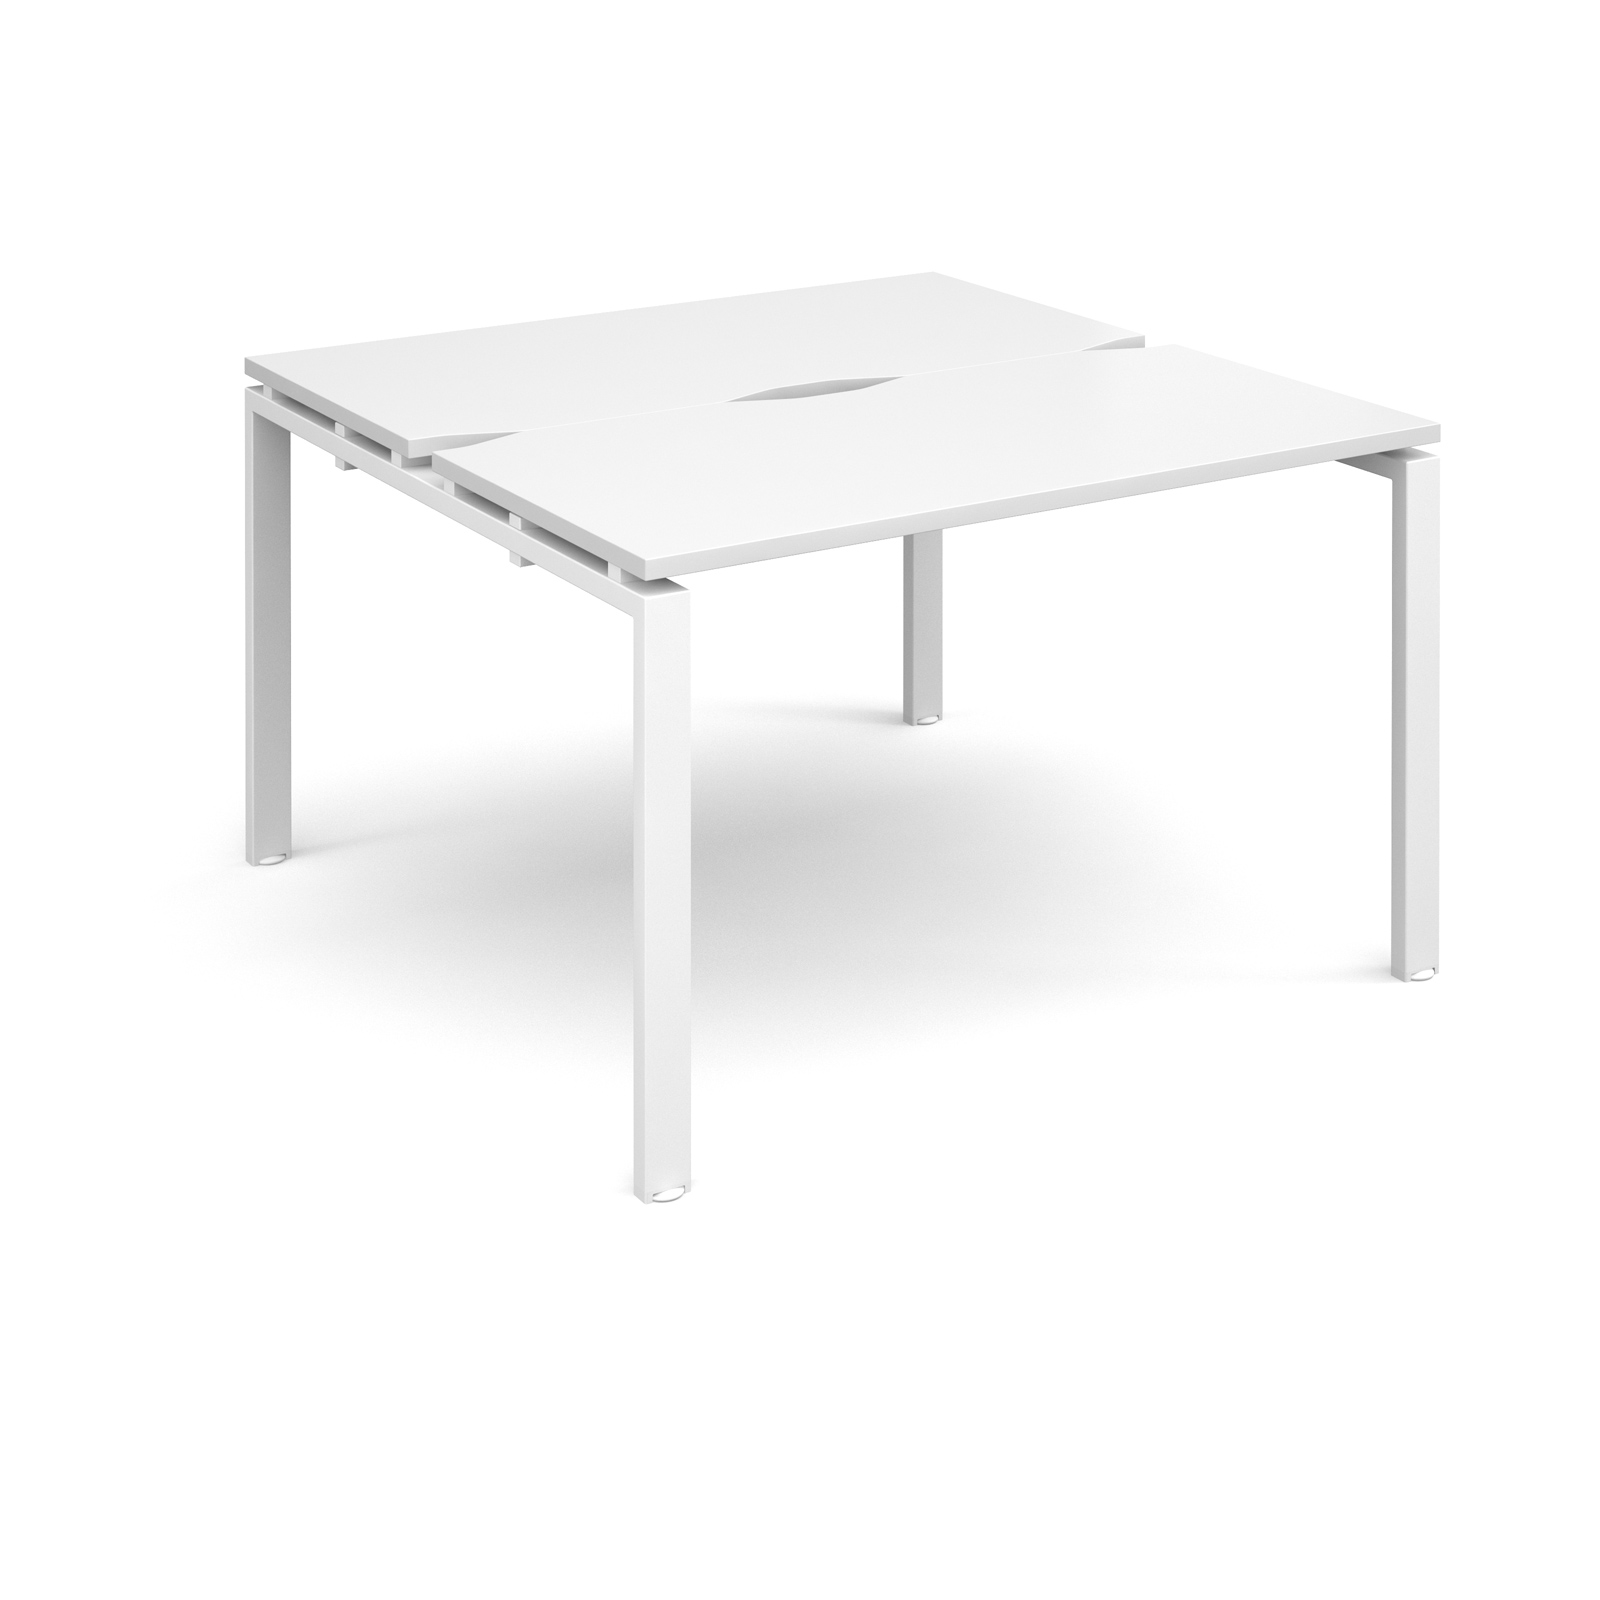 Adapt II 1200 x 1200 x 725mm Back to Back Desk - White / White Leg